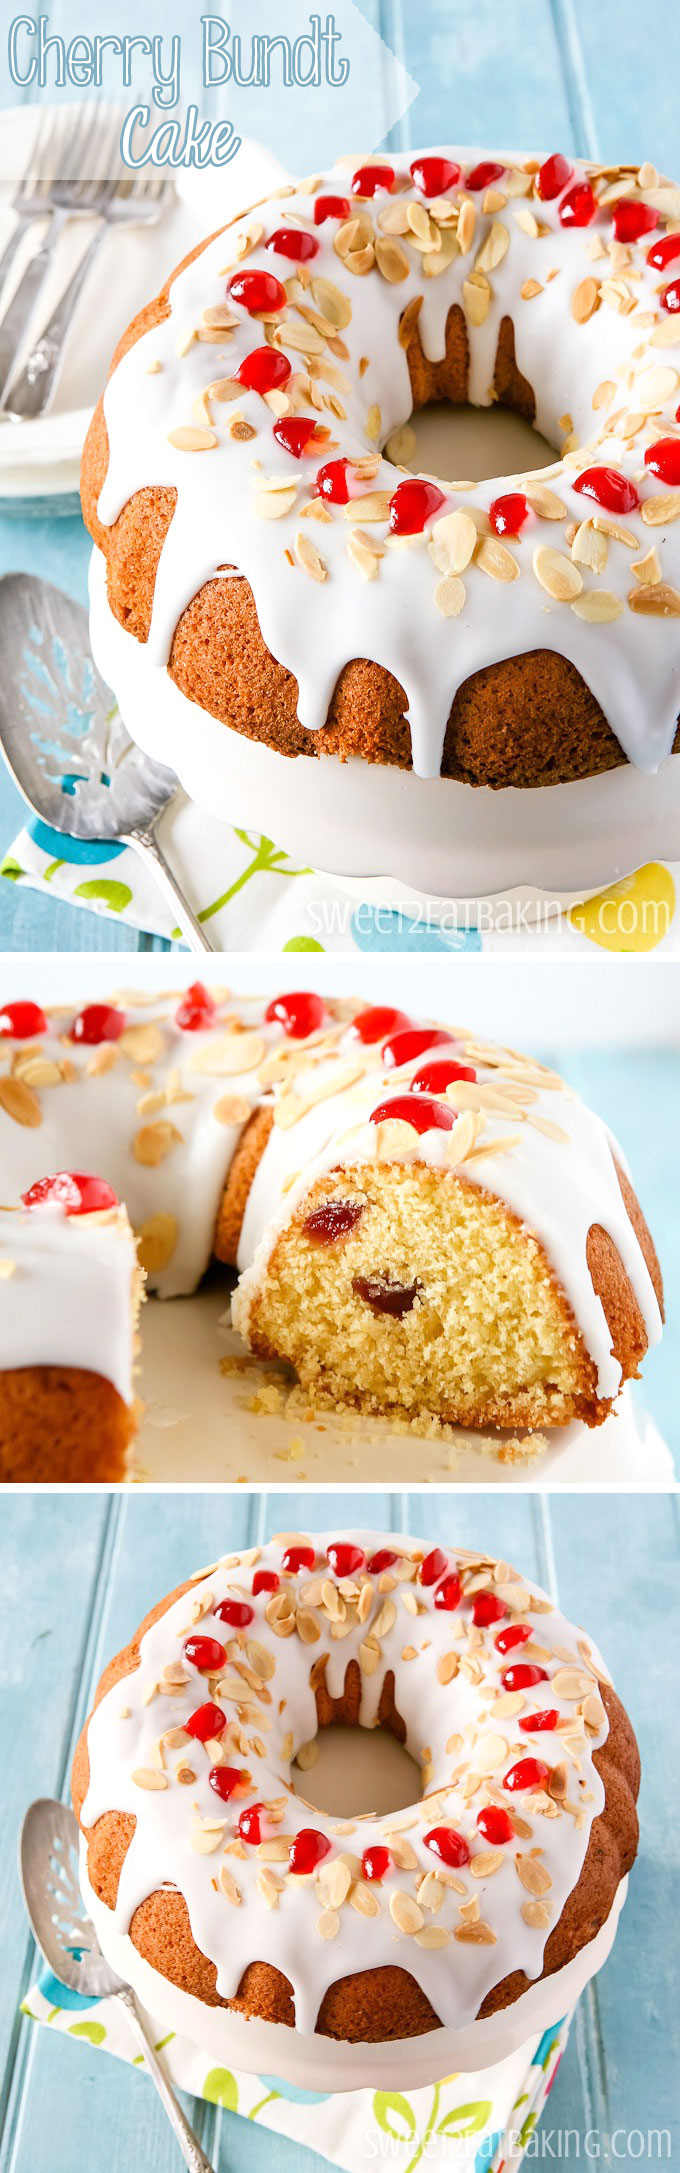 Cherry Bundt Cake Recipe by Sweet2EatBaking.com | Moist and studded with glacé cherries throughout the cake. With ground almonds, lemon zest, lemon glacé icing, toasted almonds and quartered glacé cherries.